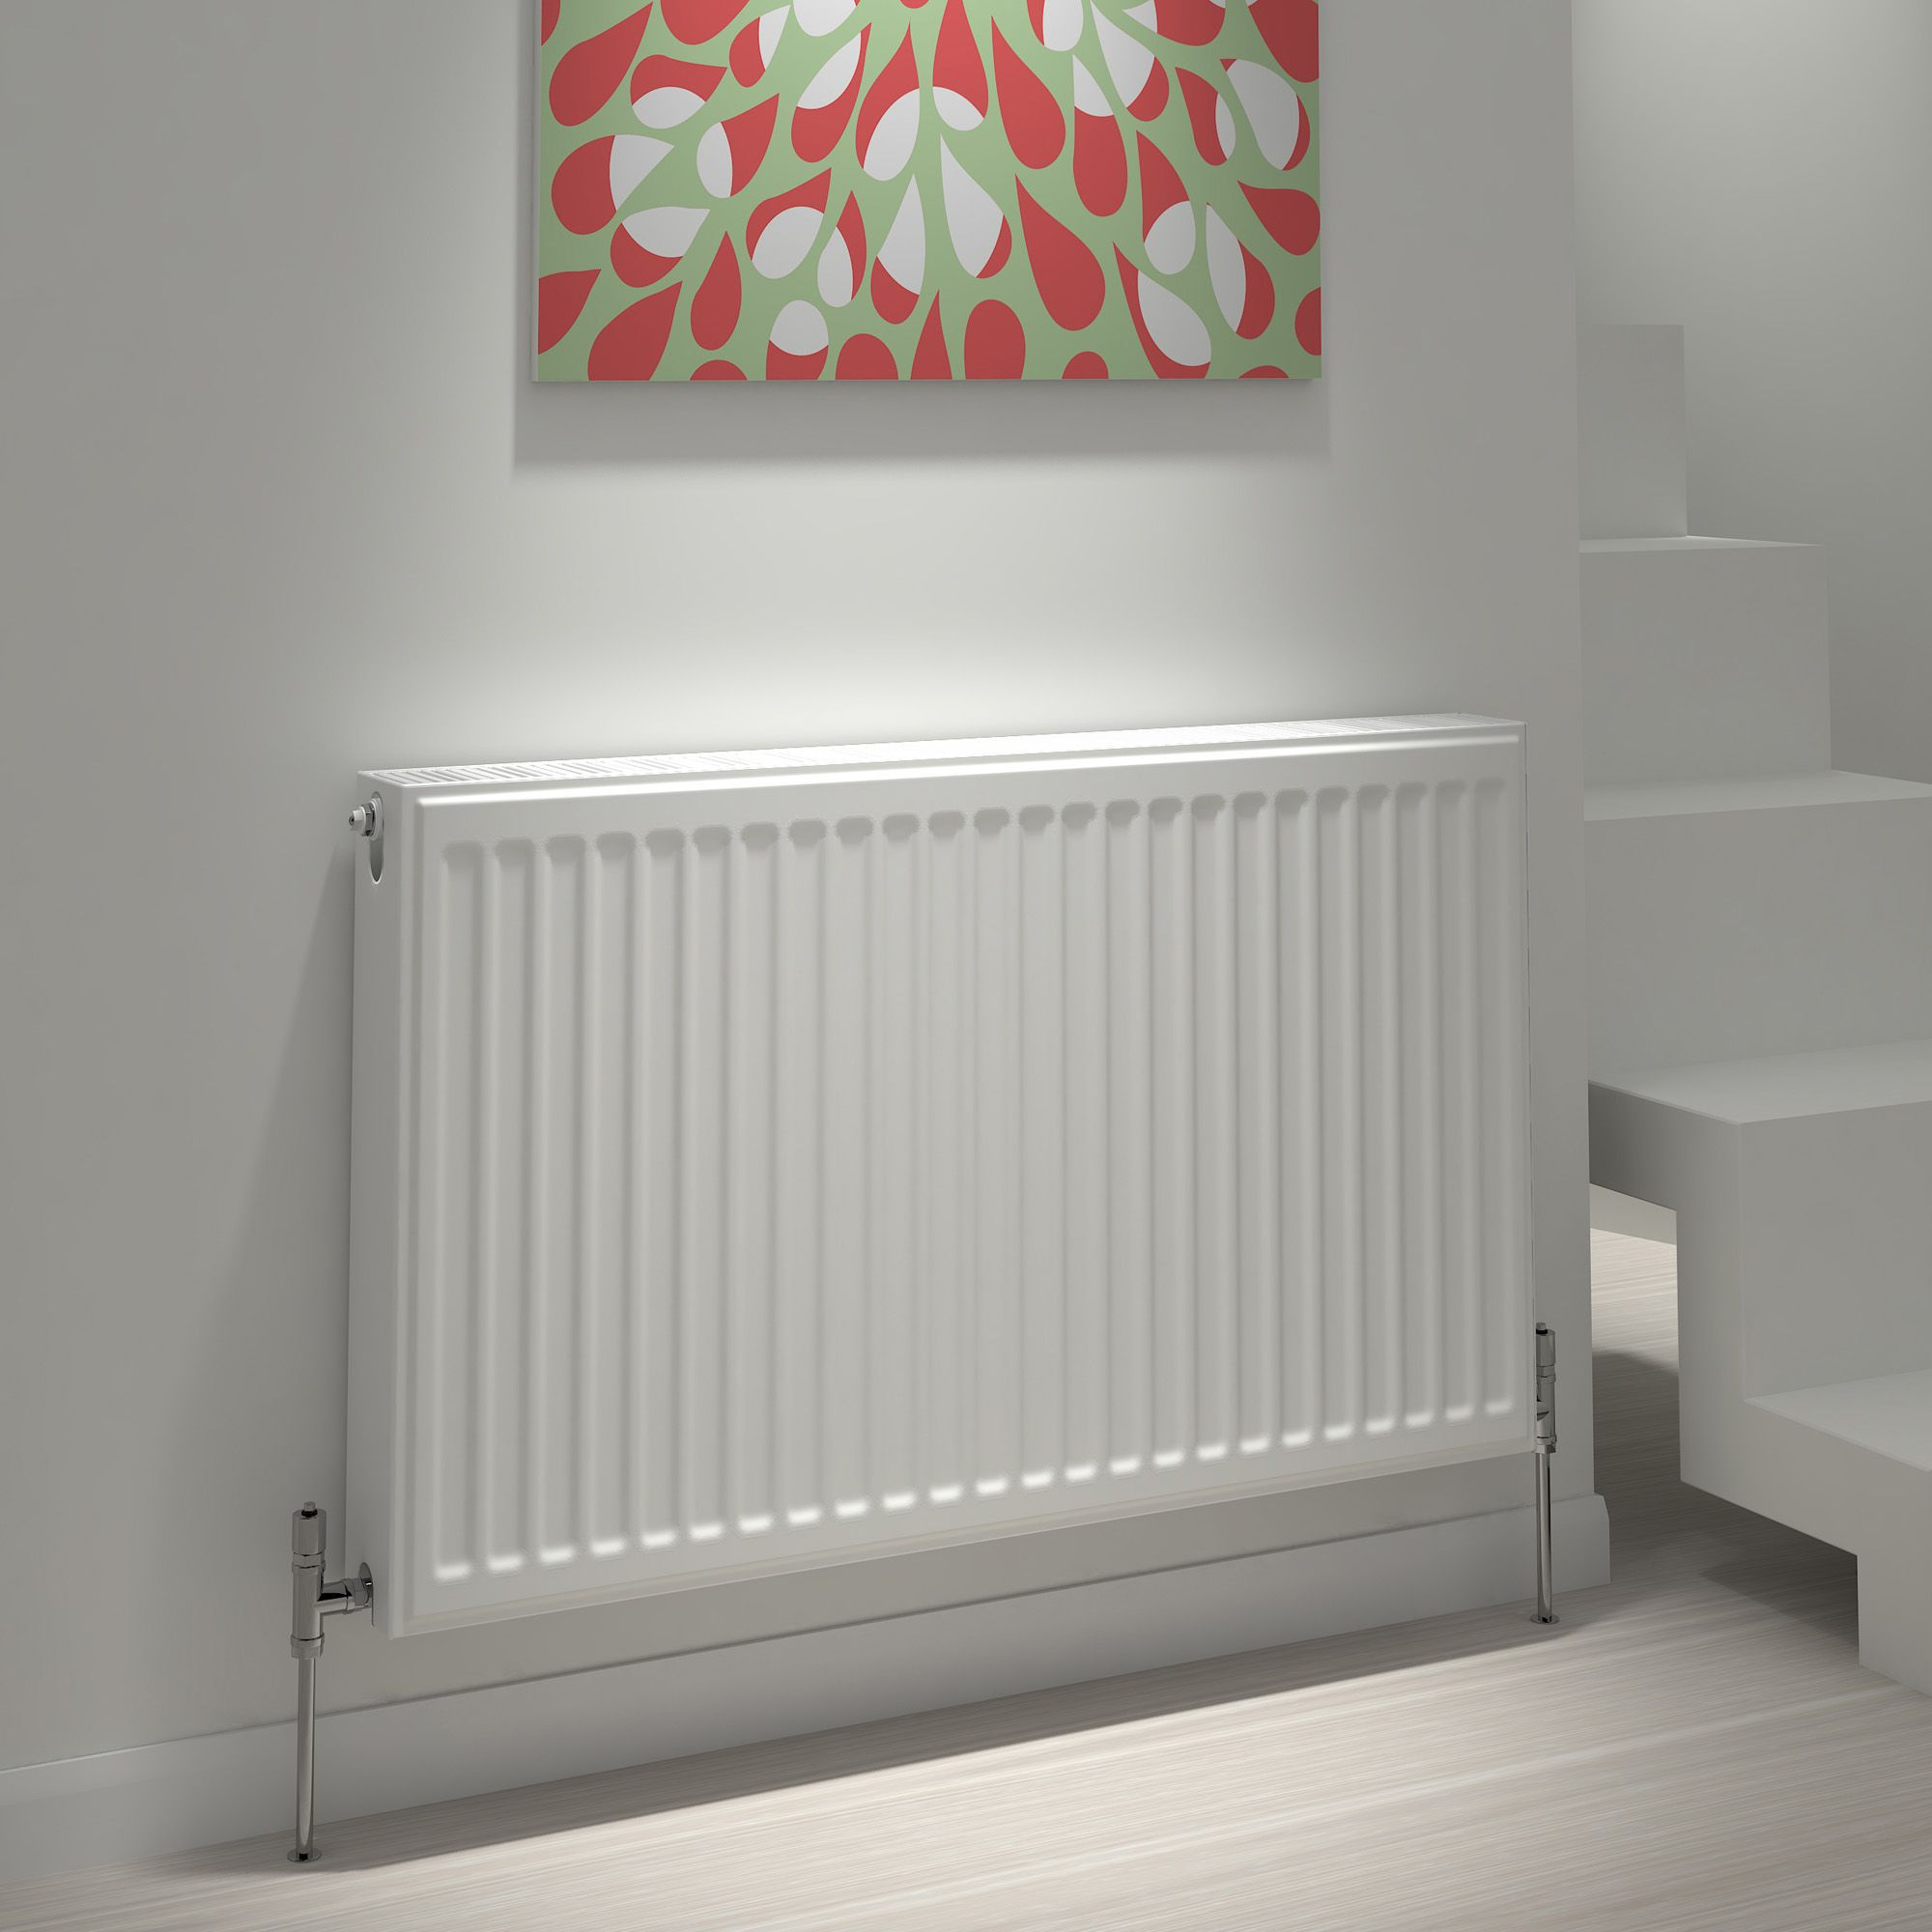 Kudox Type 11 single Panel radiator White, (H)700mm